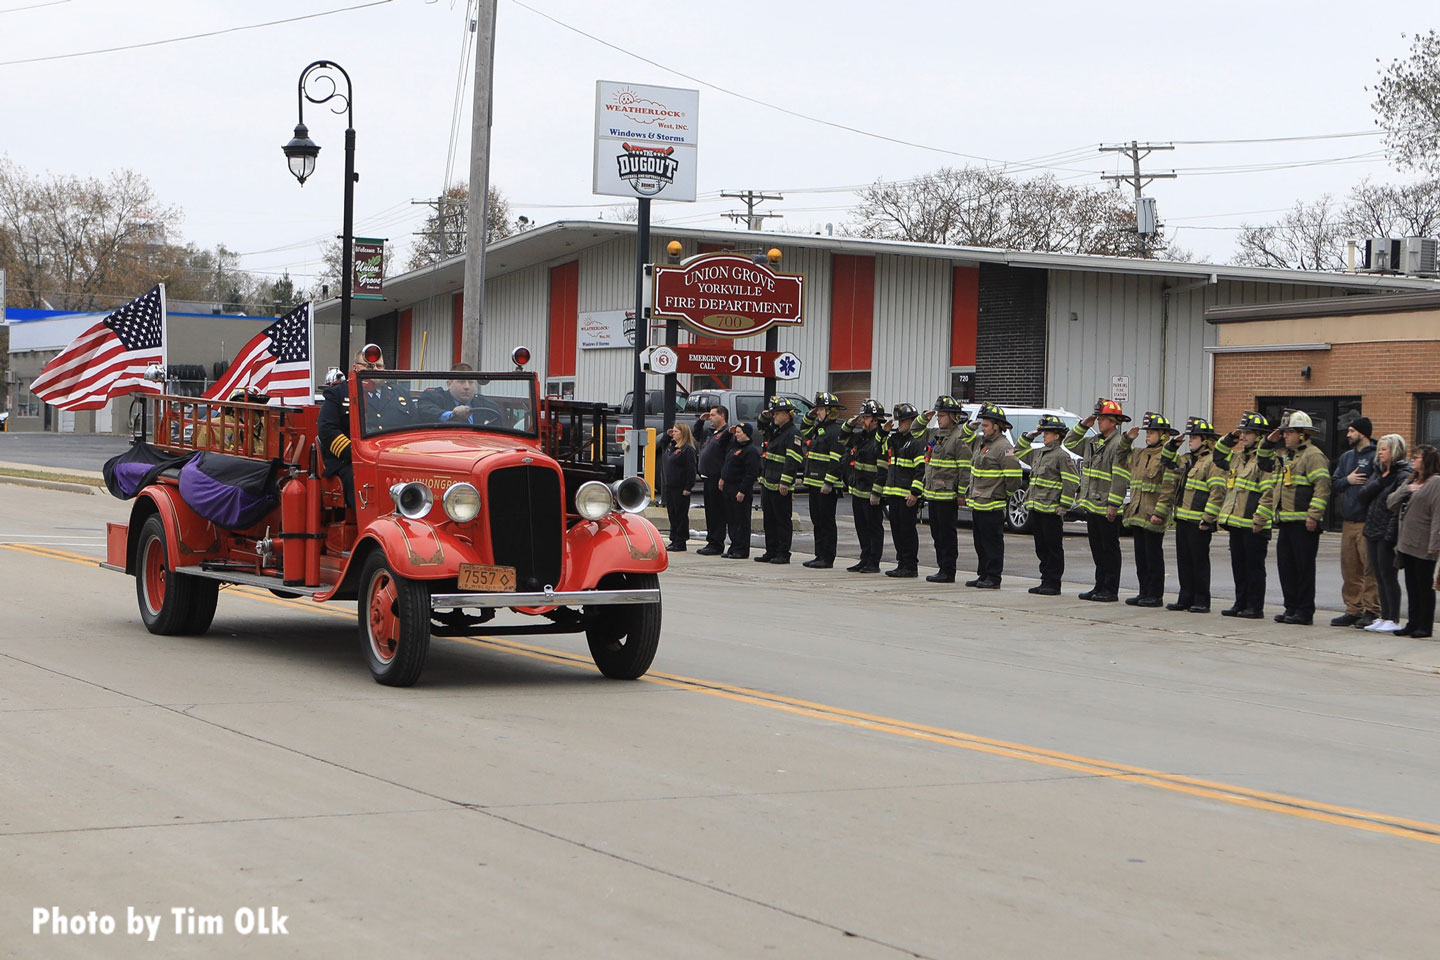 Old fire apparatus makes its way down the route during the funeral